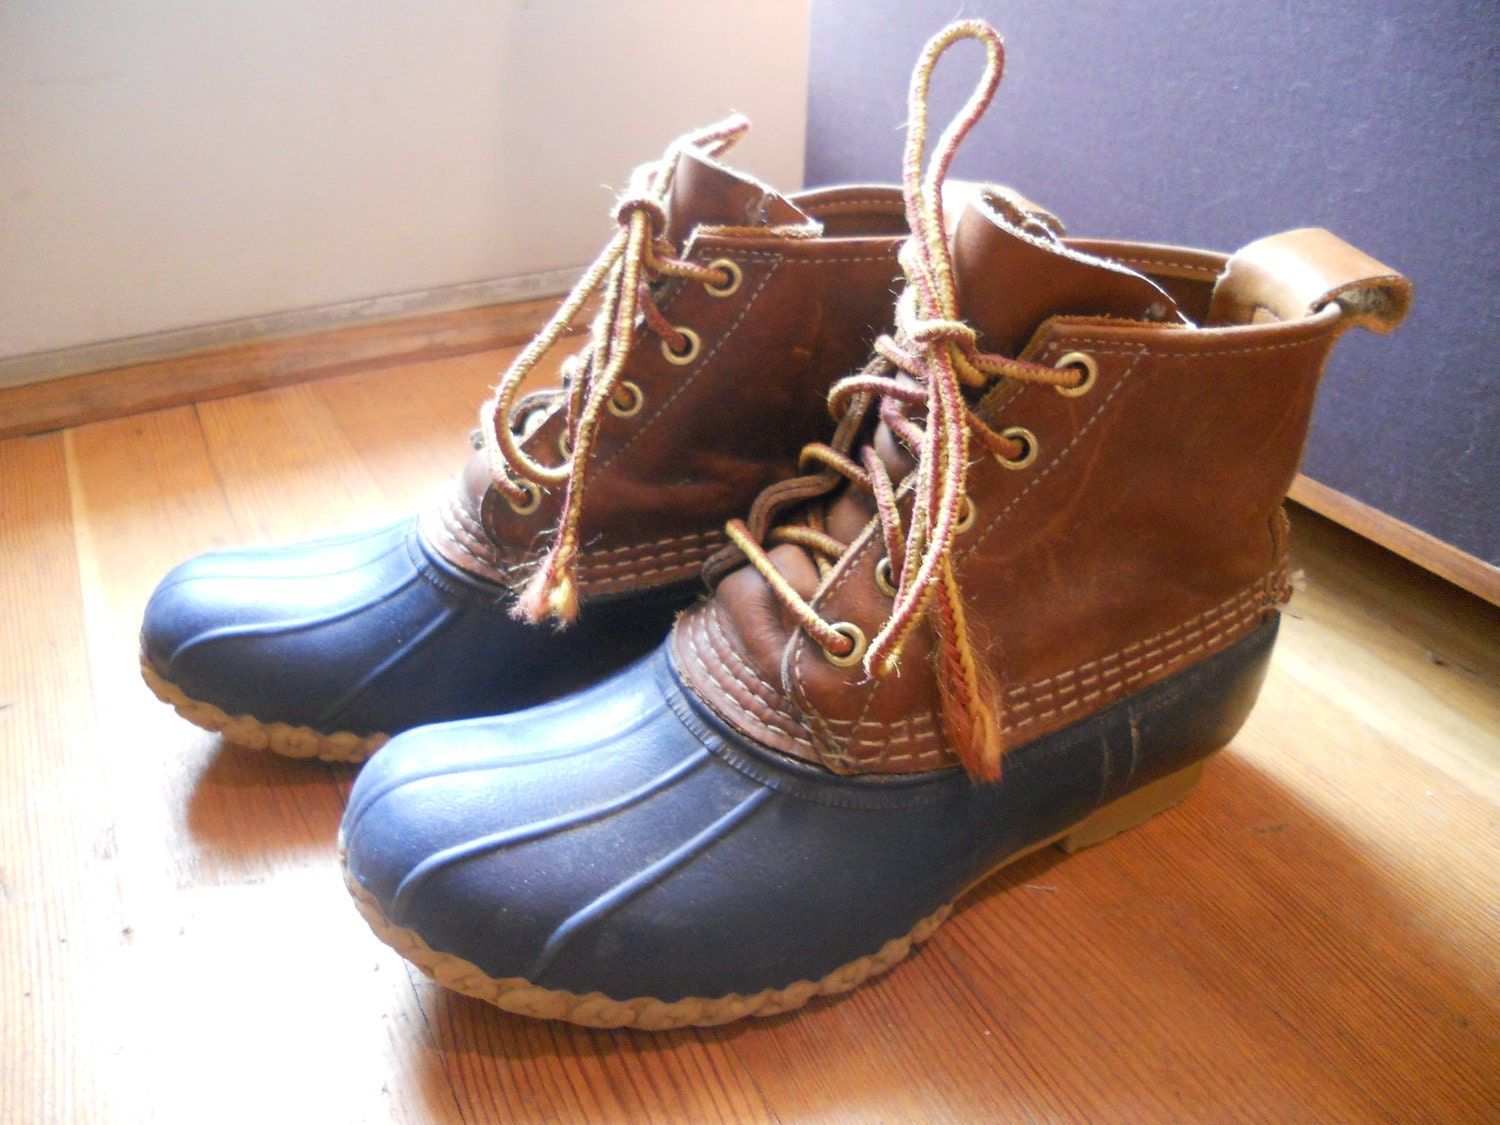 Popular 27 Off LL Bean Shoes  ISO Navy Or Brown Bean Boots 83939 Or 6